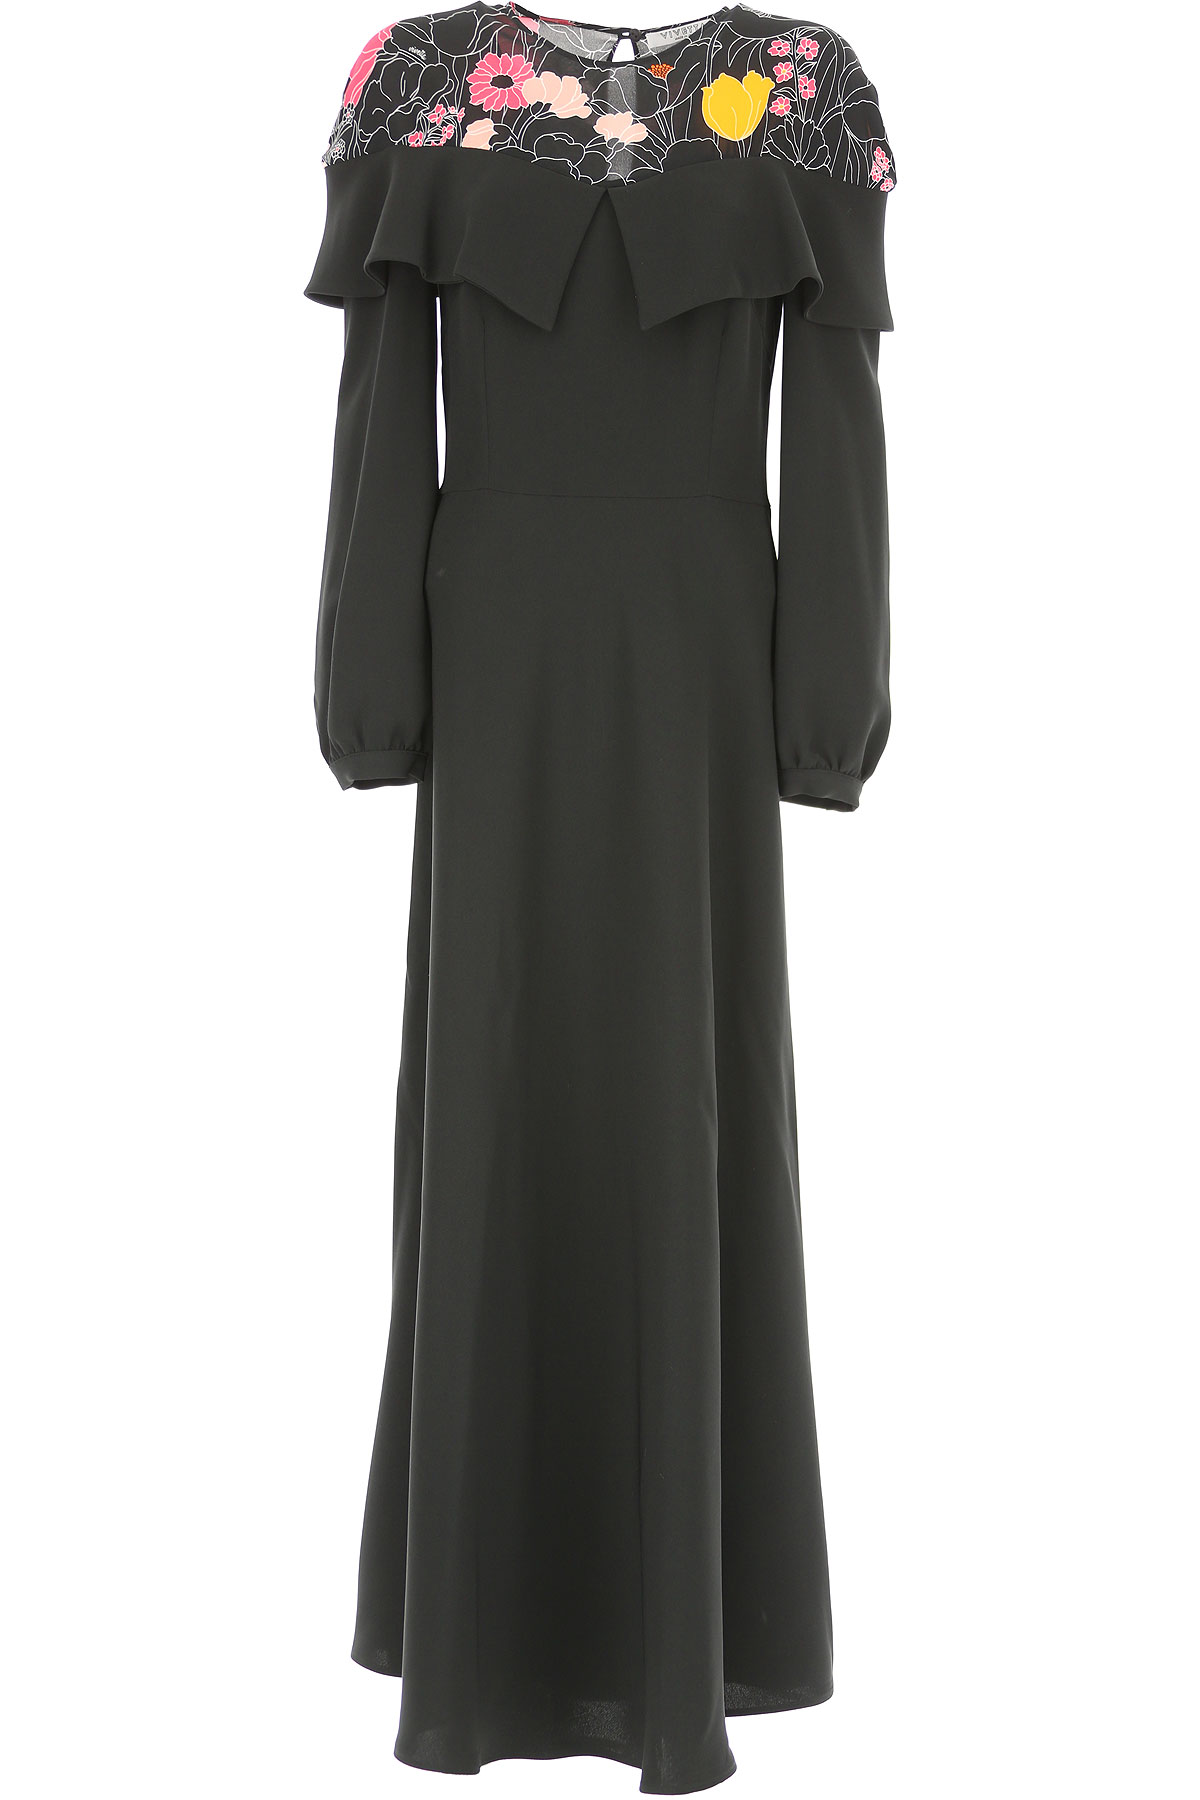 Image of Vivetta Dress for Women, Evening Cocktail Party, Black, polyester, 2017, 4 6 8